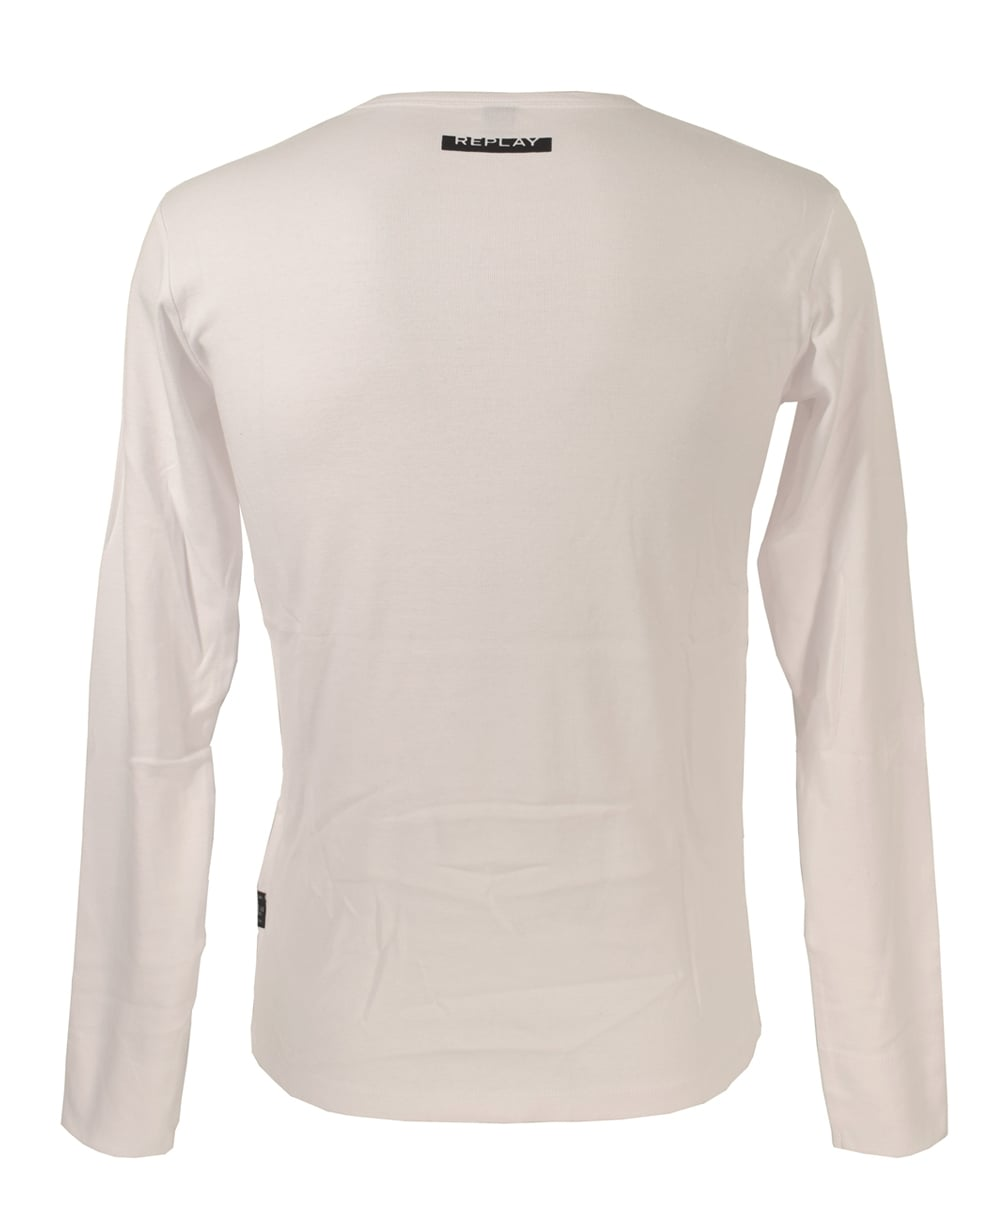 Find great deals on eBay for white crew neck t shirts. Shop with confidence.